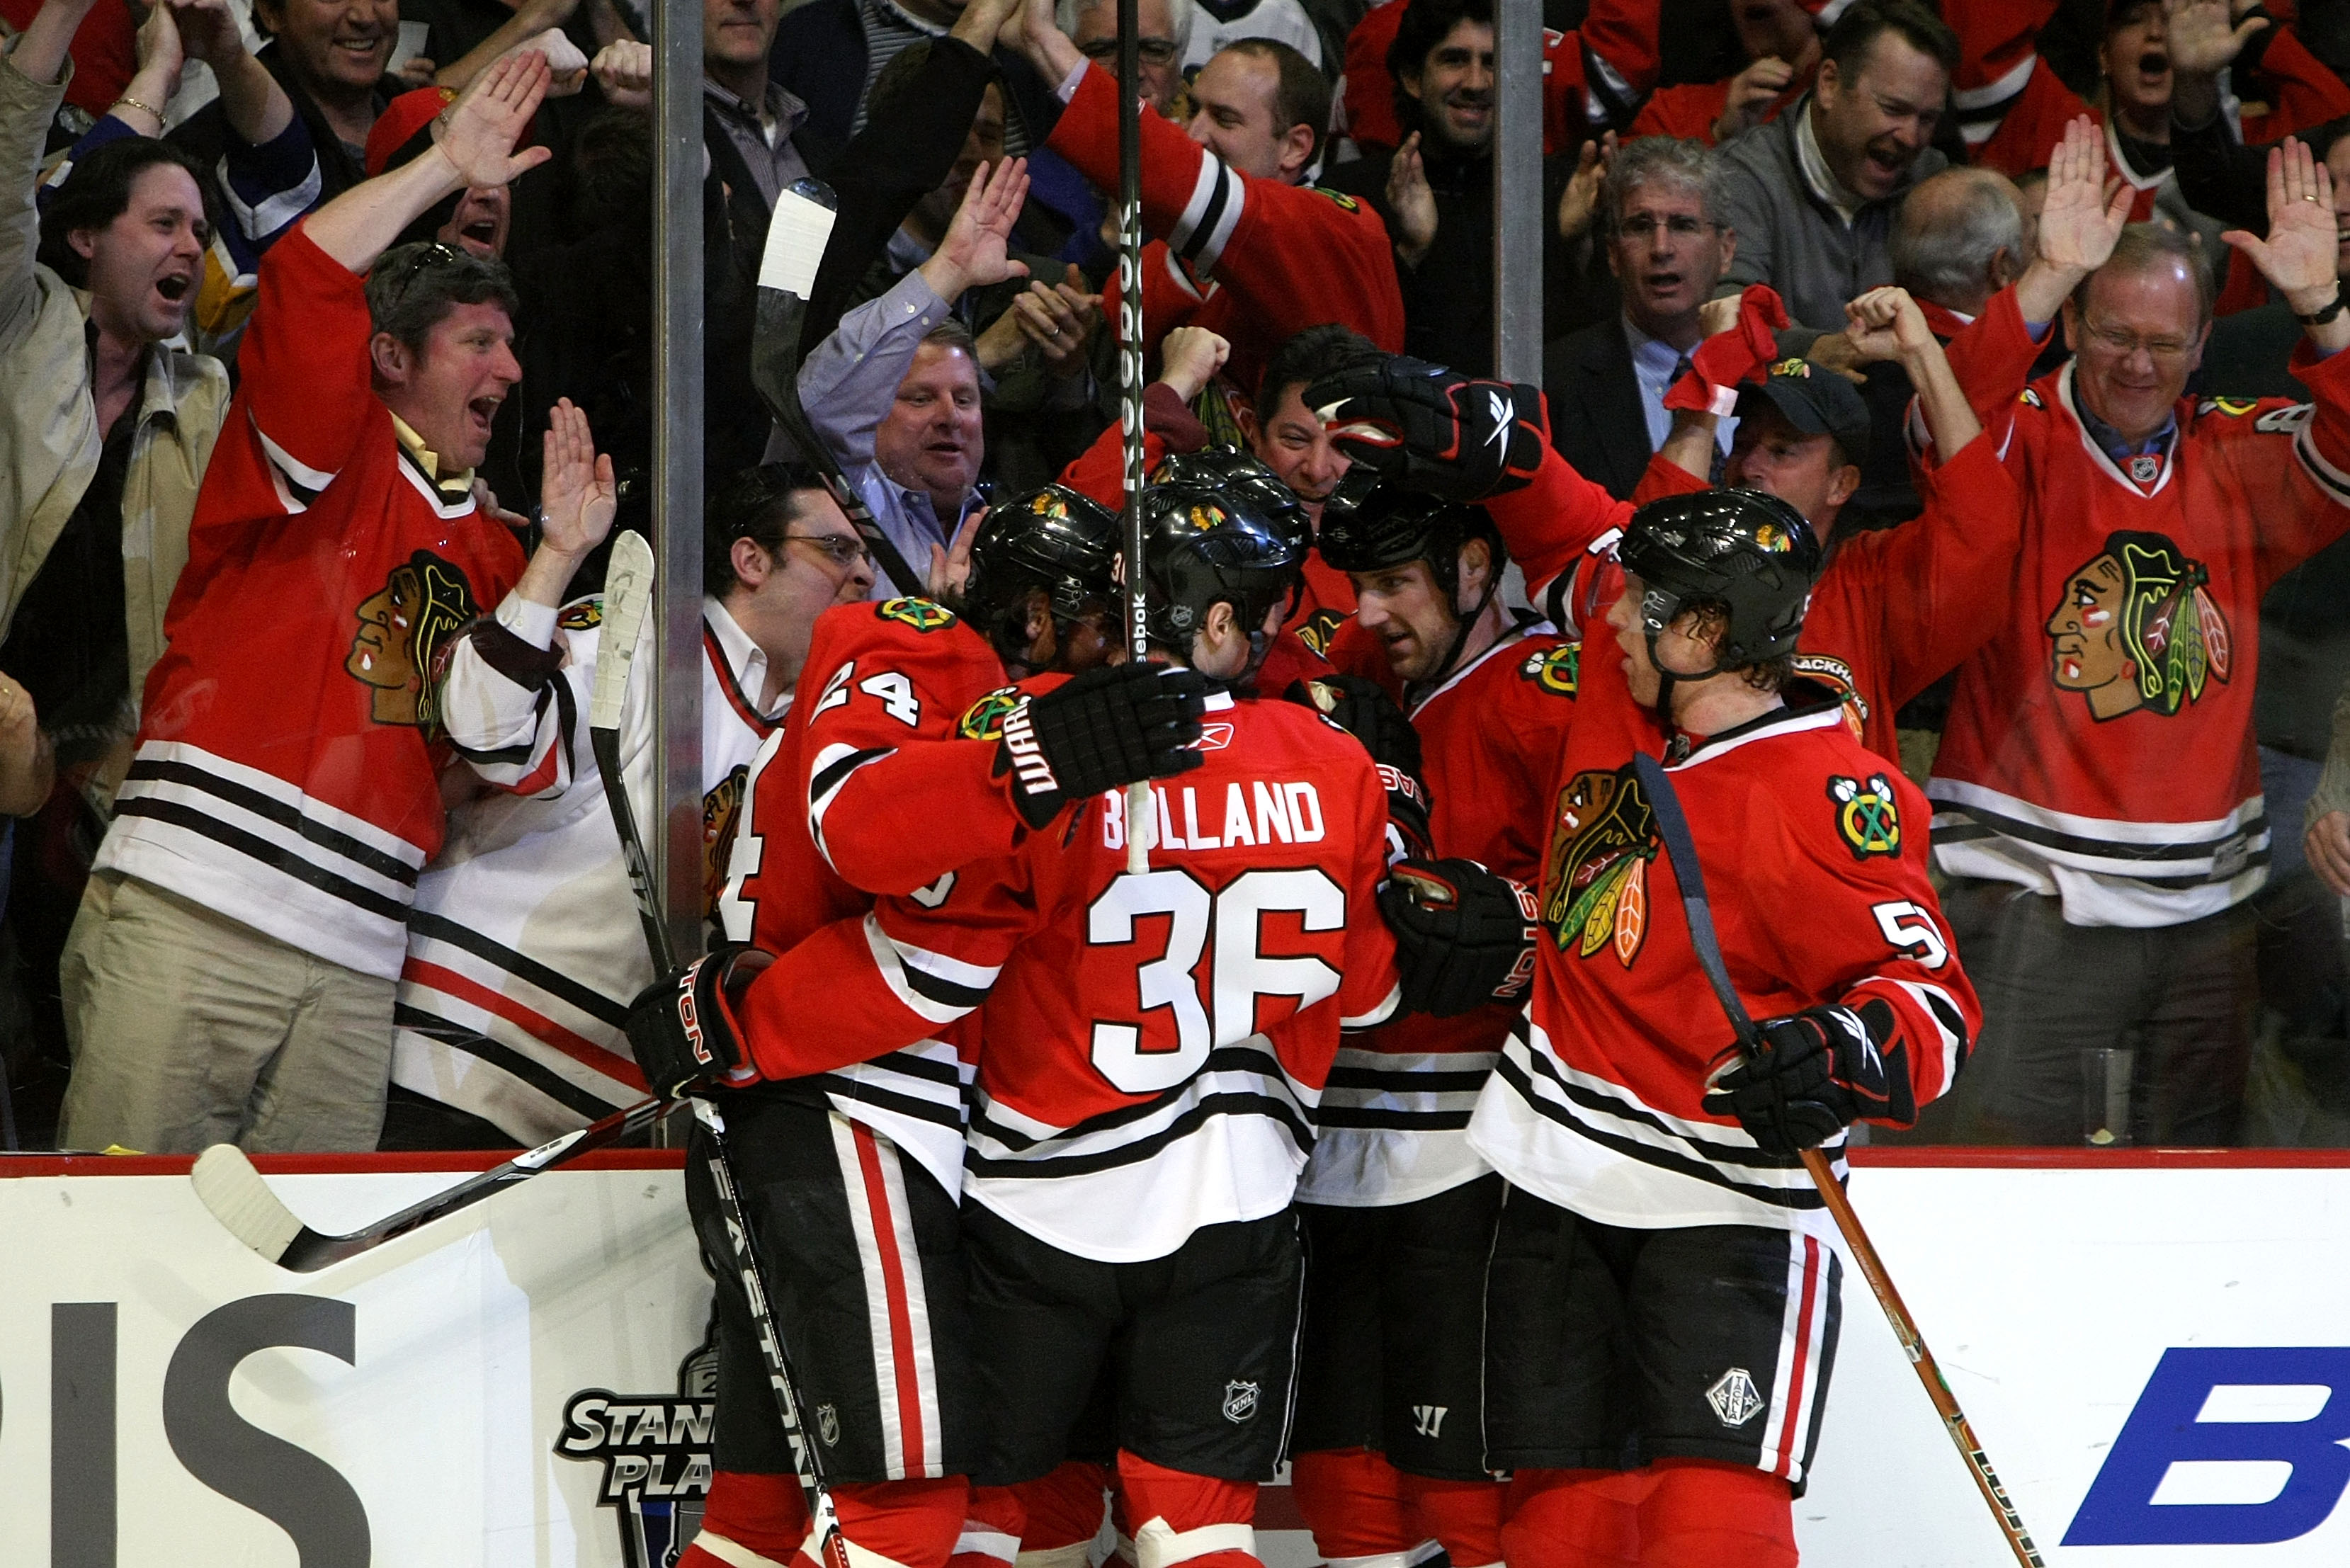 When the Blackhawks get healthy, who will disappear from the team photo?